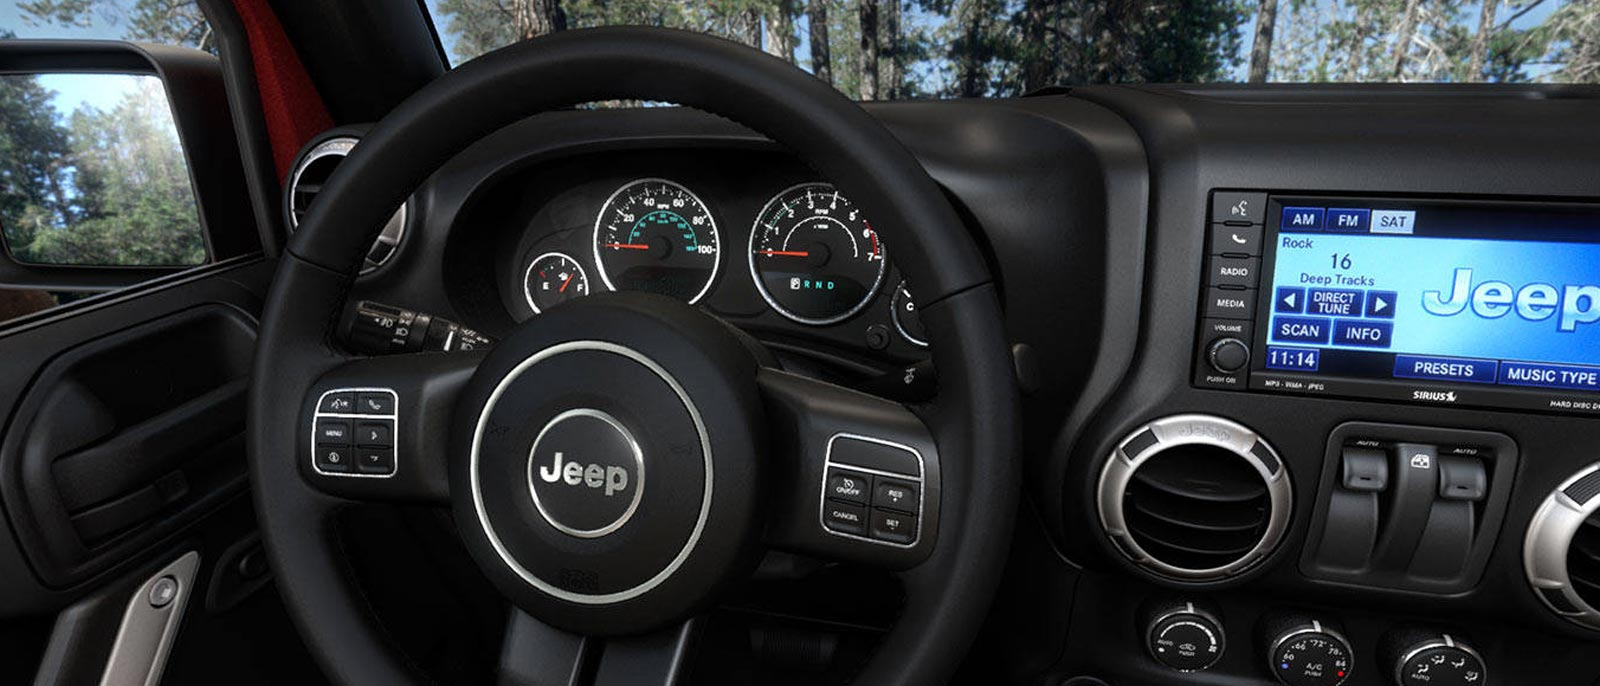 jeep wrangler 2015 interior. 2015 jeep wrangler interior r